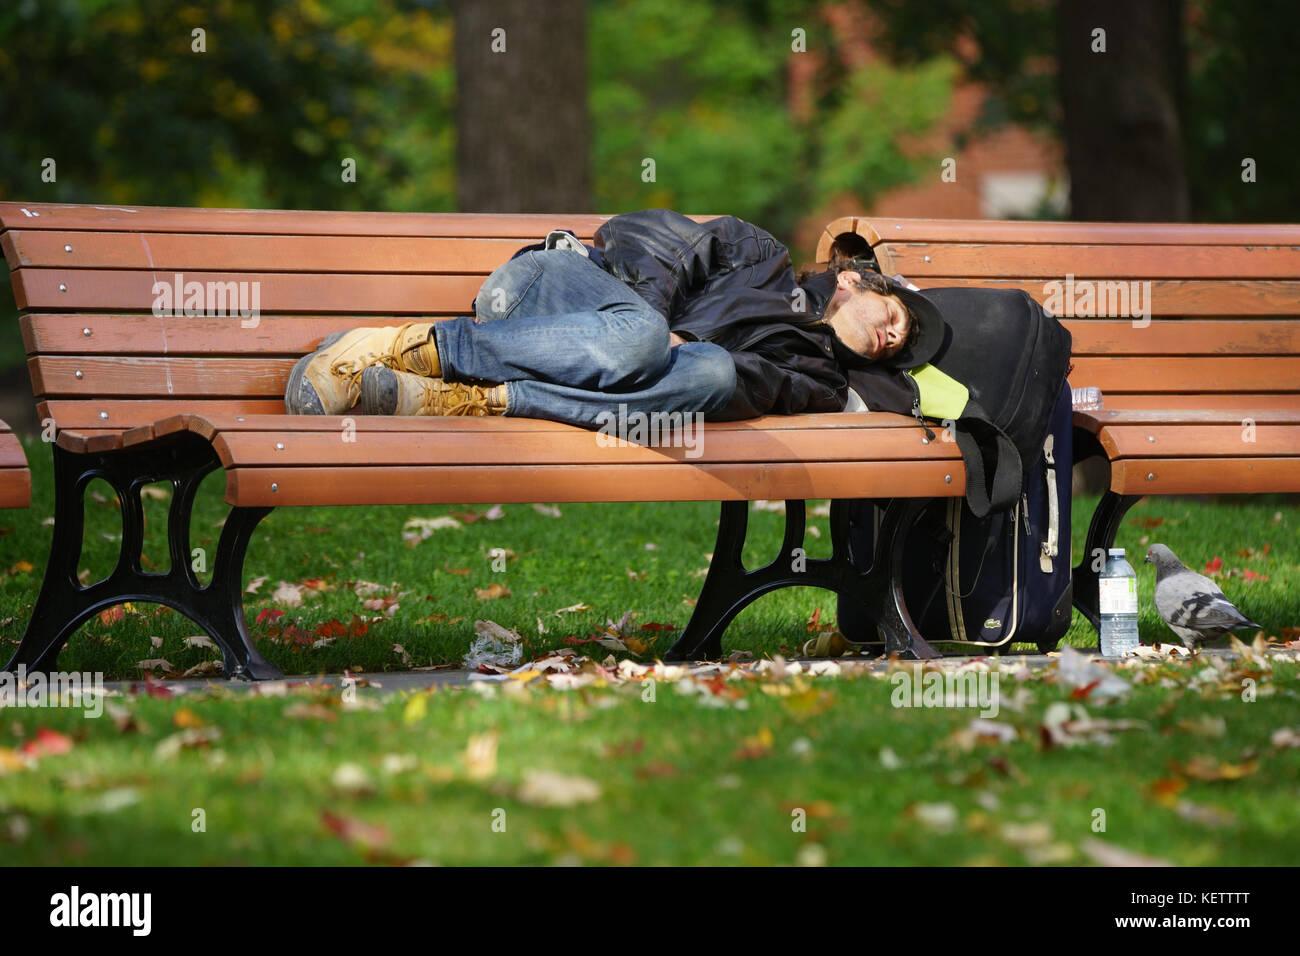 Montreal,Canada,22 October,2017.Homeless man sleeping on a park bench in Montreal's downtown core.Credit:Mario - Stock Image